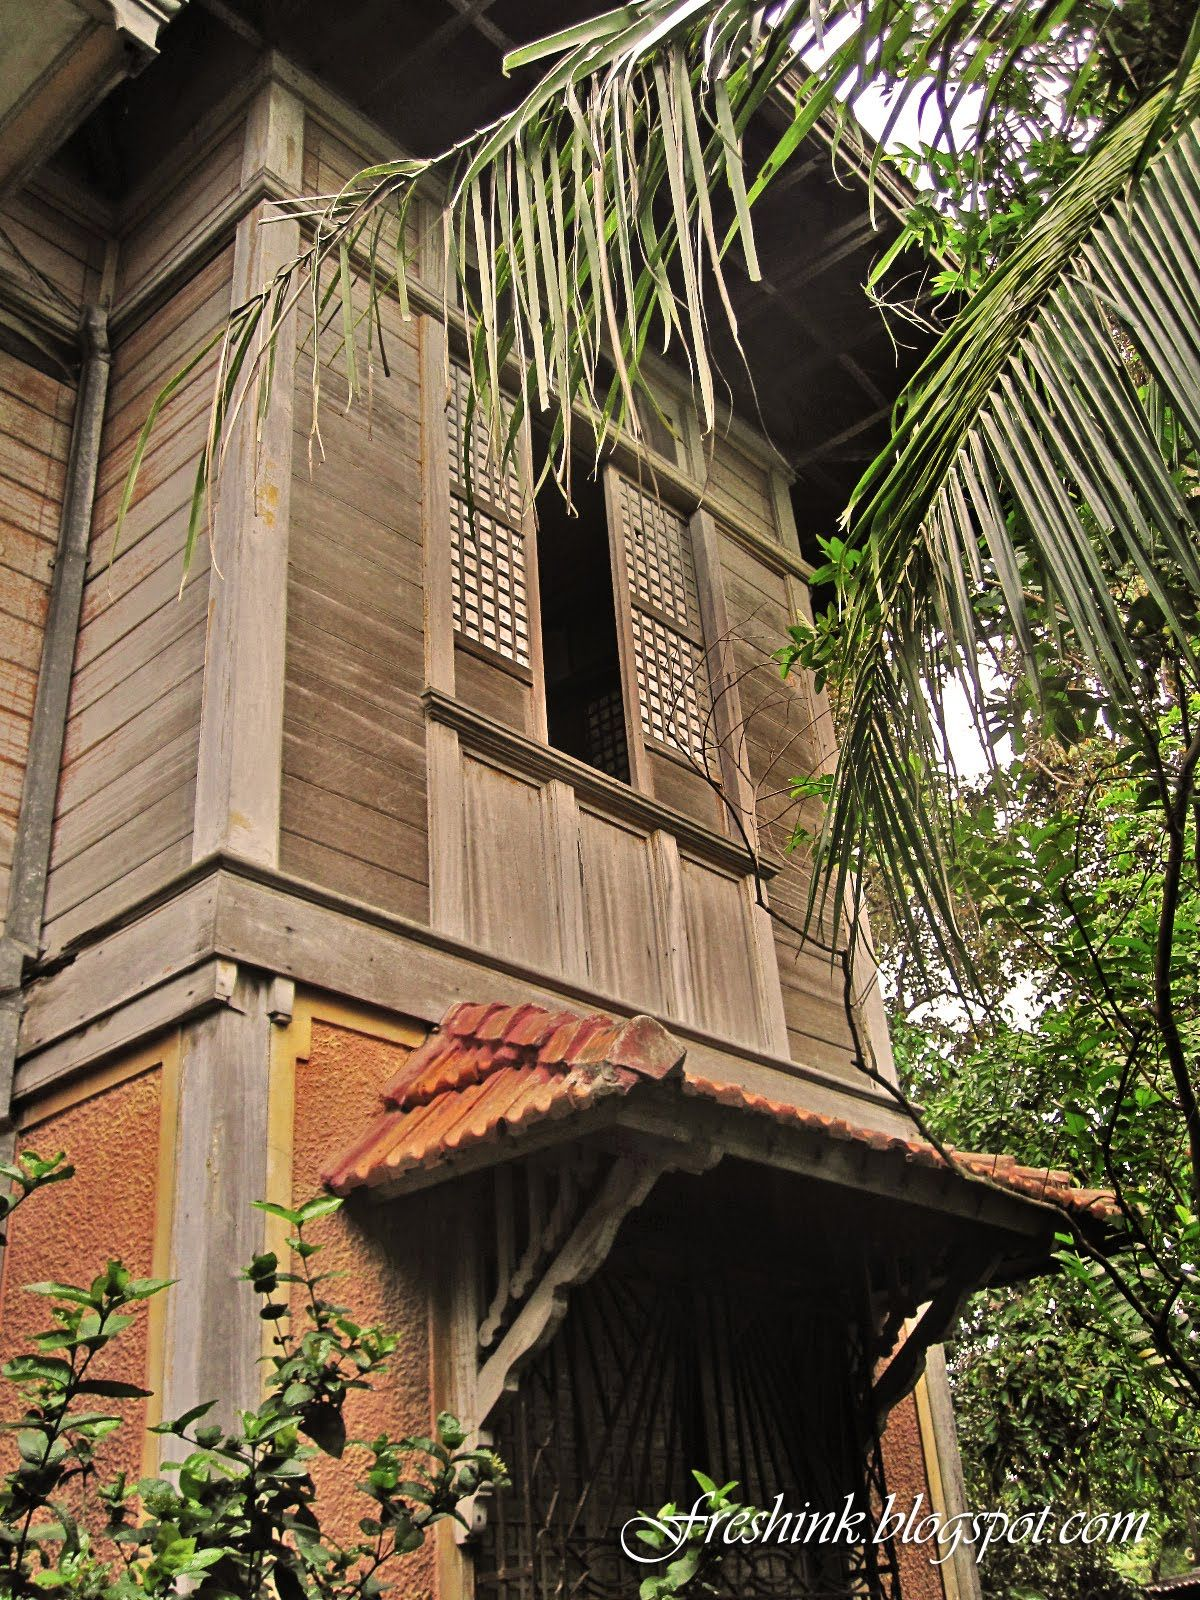 Old philippine house filipino landscape traditional for Filipino landscape architects